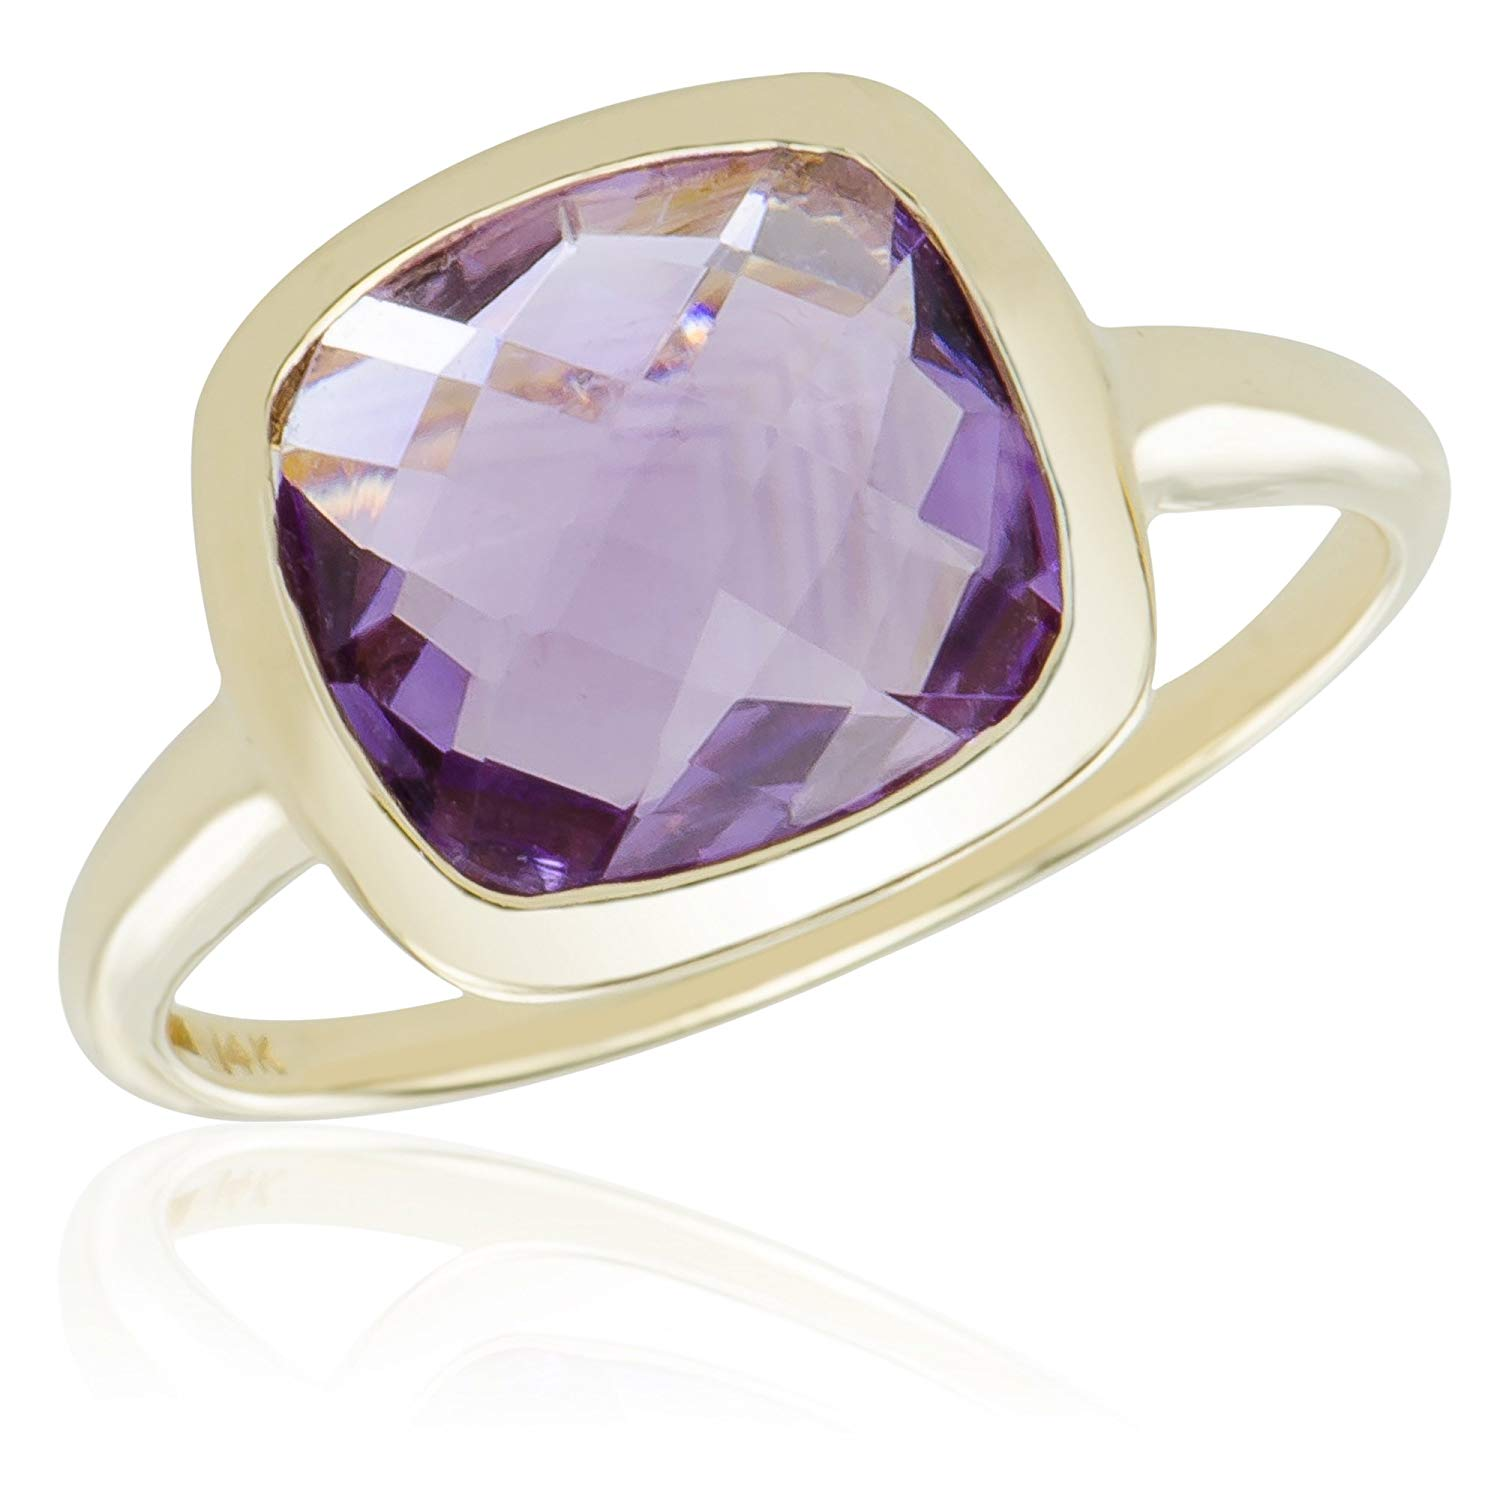 Caratera Fine Gold Jewelry 14k Brilliant Gold Chunky Ring with Cushion Style Purple Amethyst for Men and Women